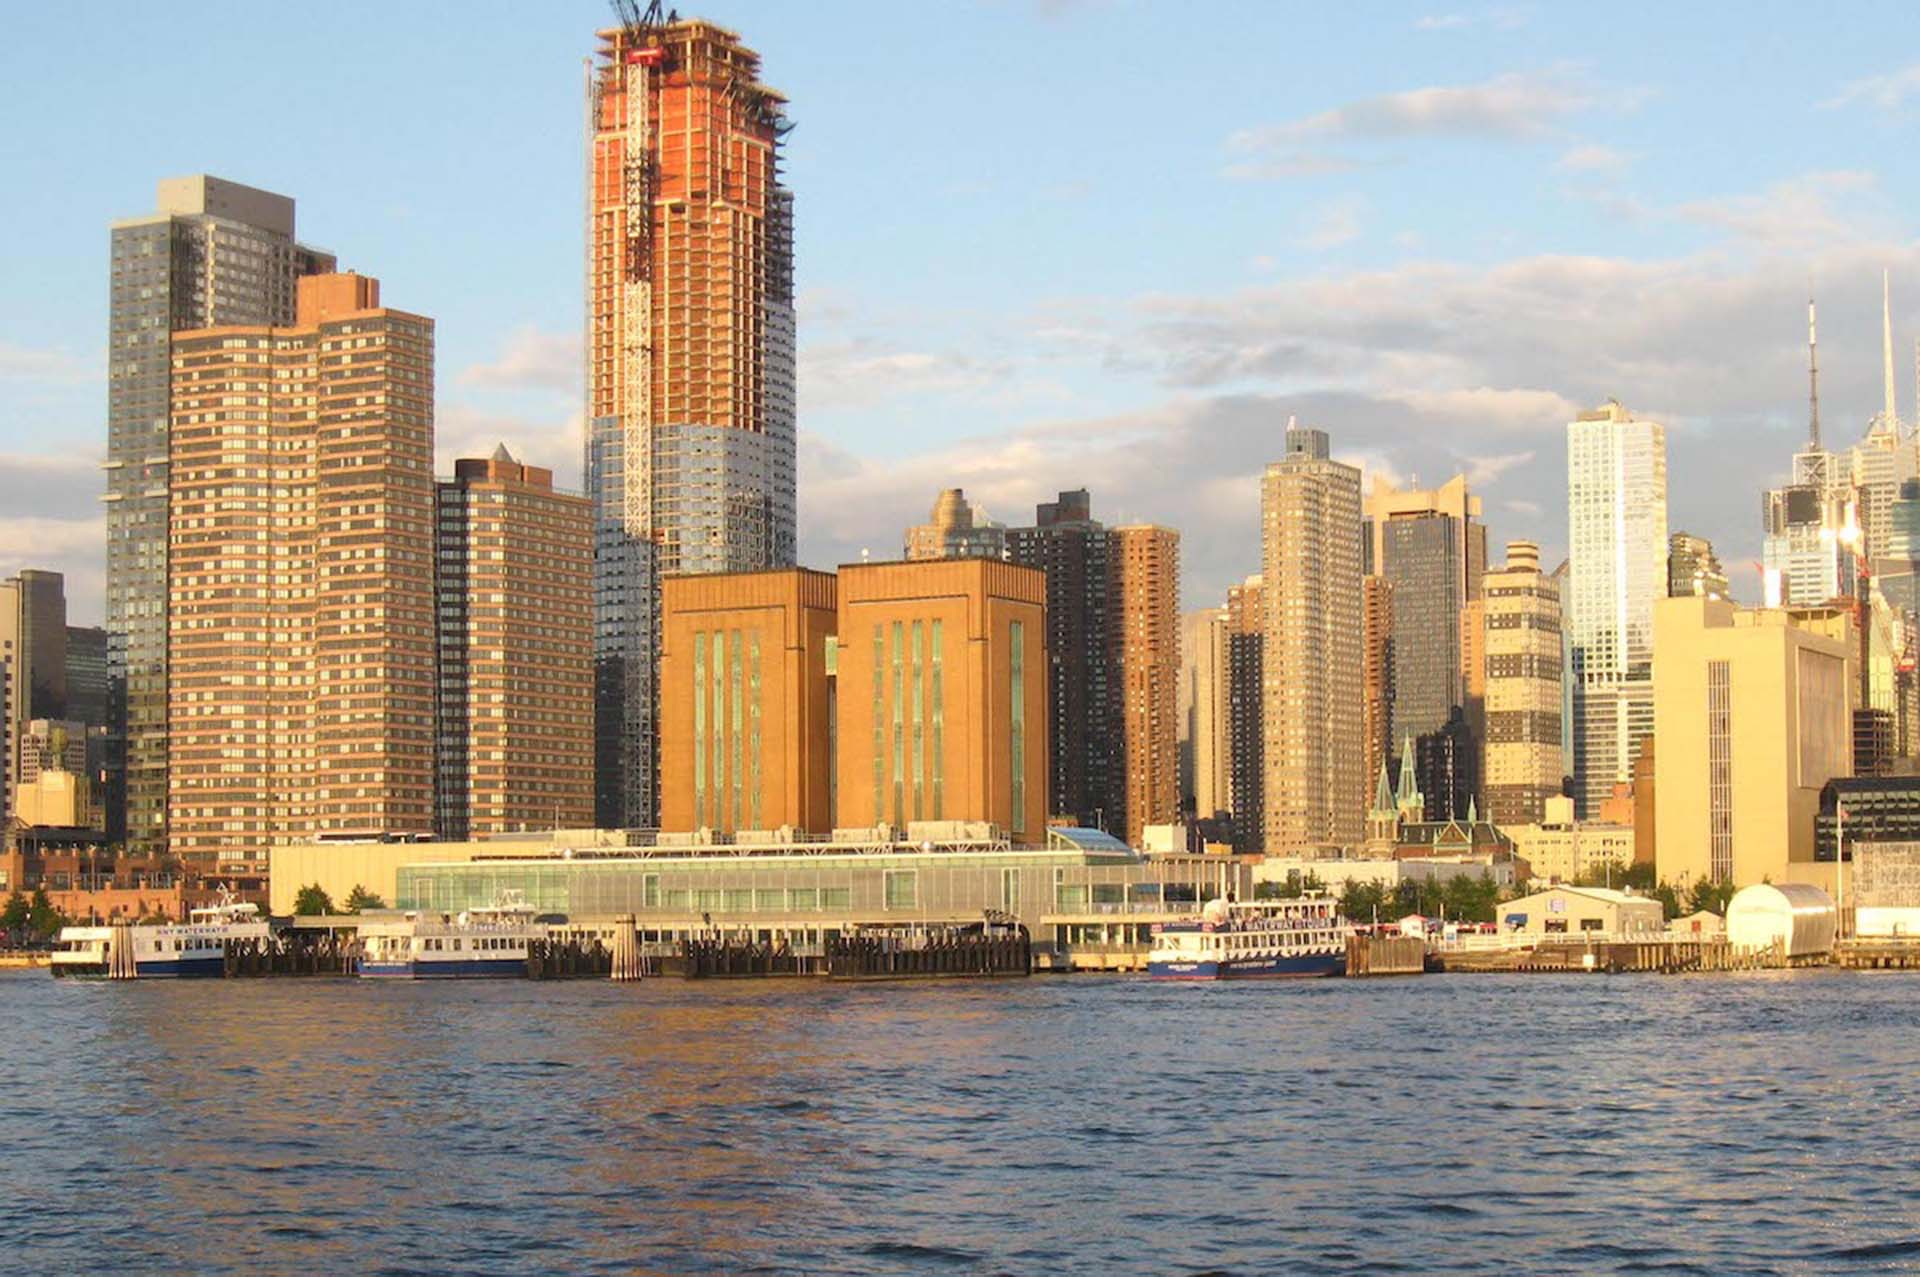 The Midtown Ferry Terminal in Manhattan, another busy spot with potential for kayak accidents